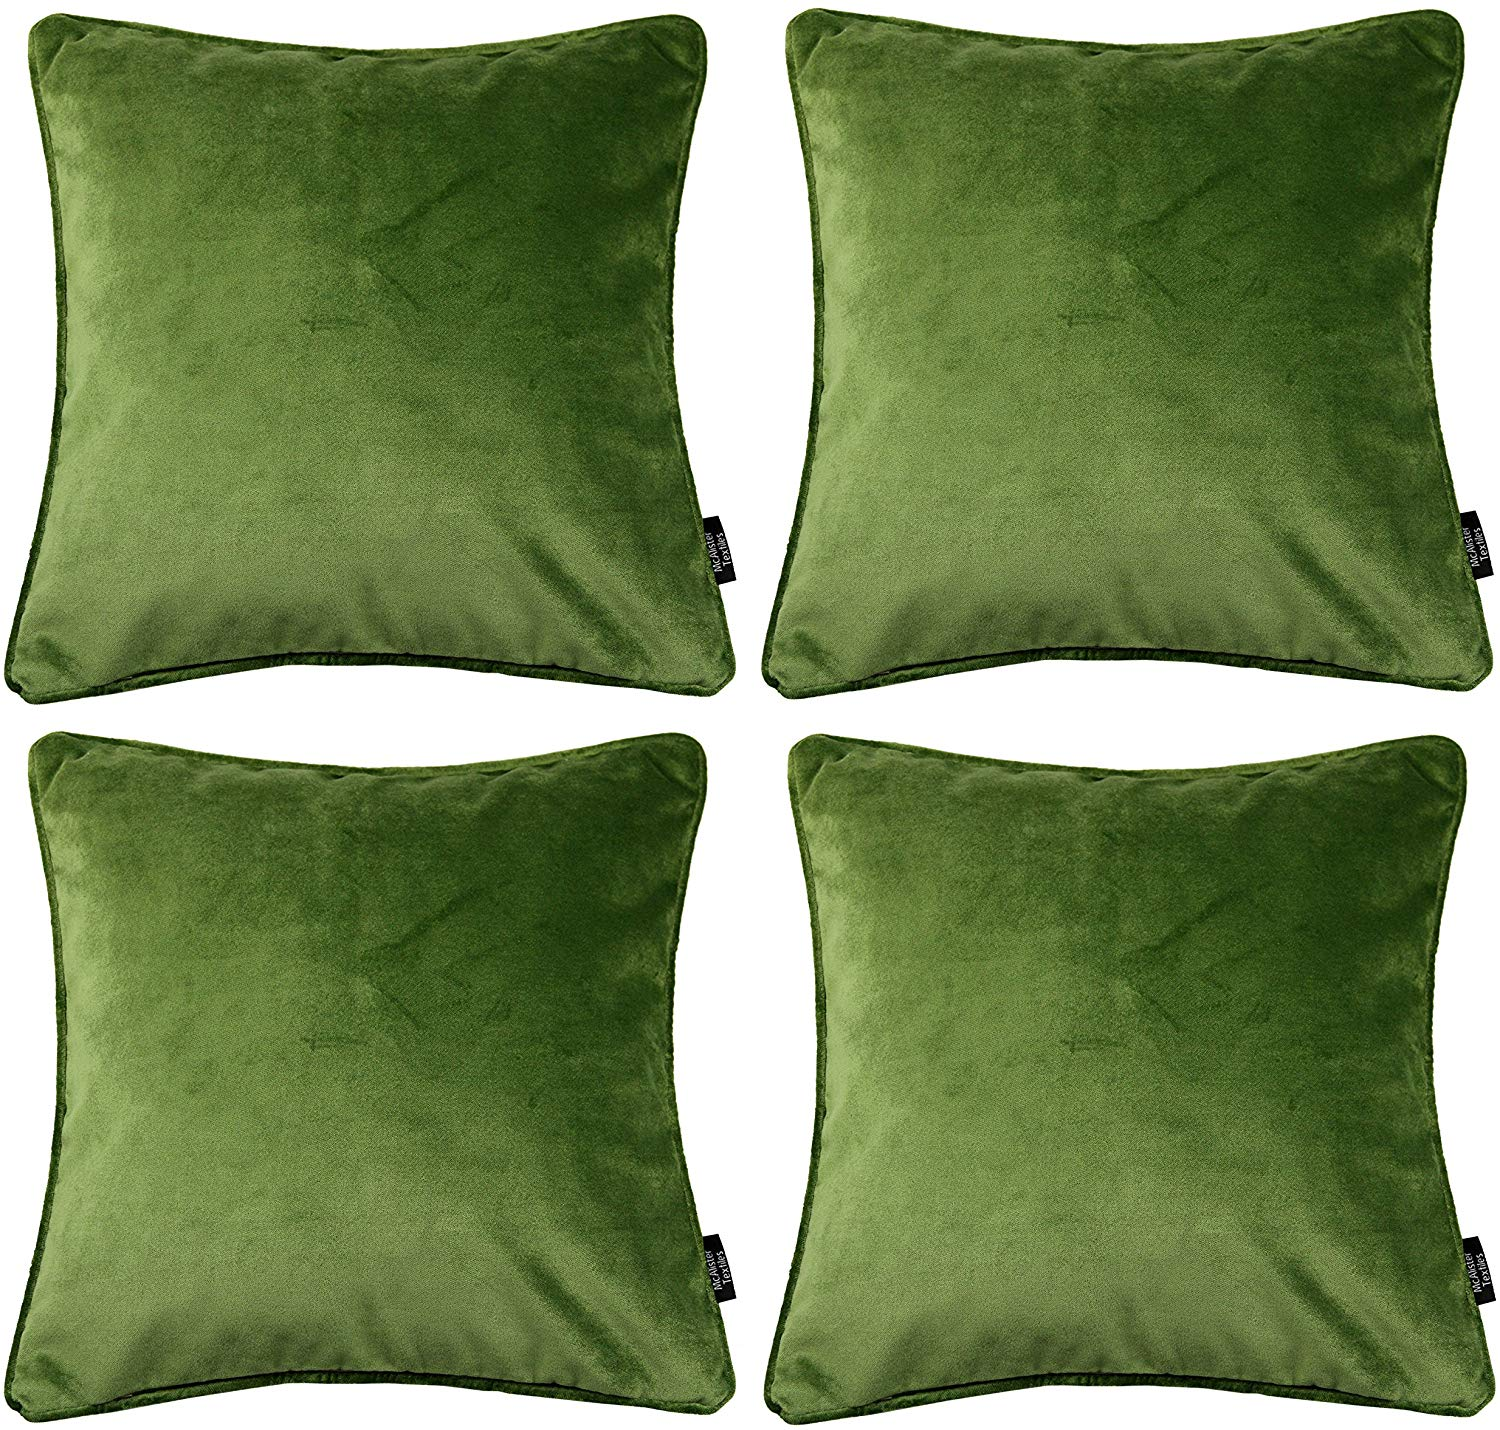 McAlister Textiles Matt Fern Green Velvet 43cm x 43cm Cushion Sets Cushions and Covers Cushion Covers Set of 4